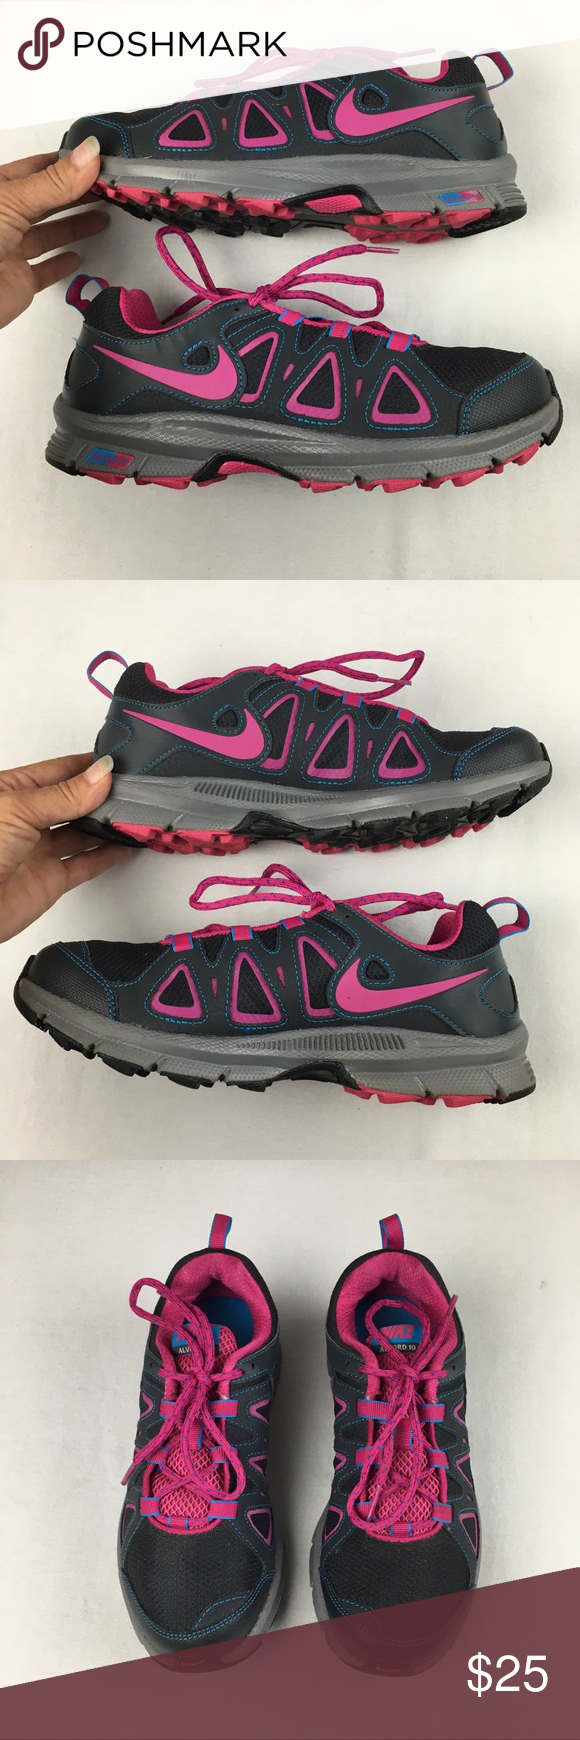 fbec352941063 Nike Air Alvord 10 Wmns 7.5 Running Gray Pink Like new A13 Nike Shoes  Athletic Shoes